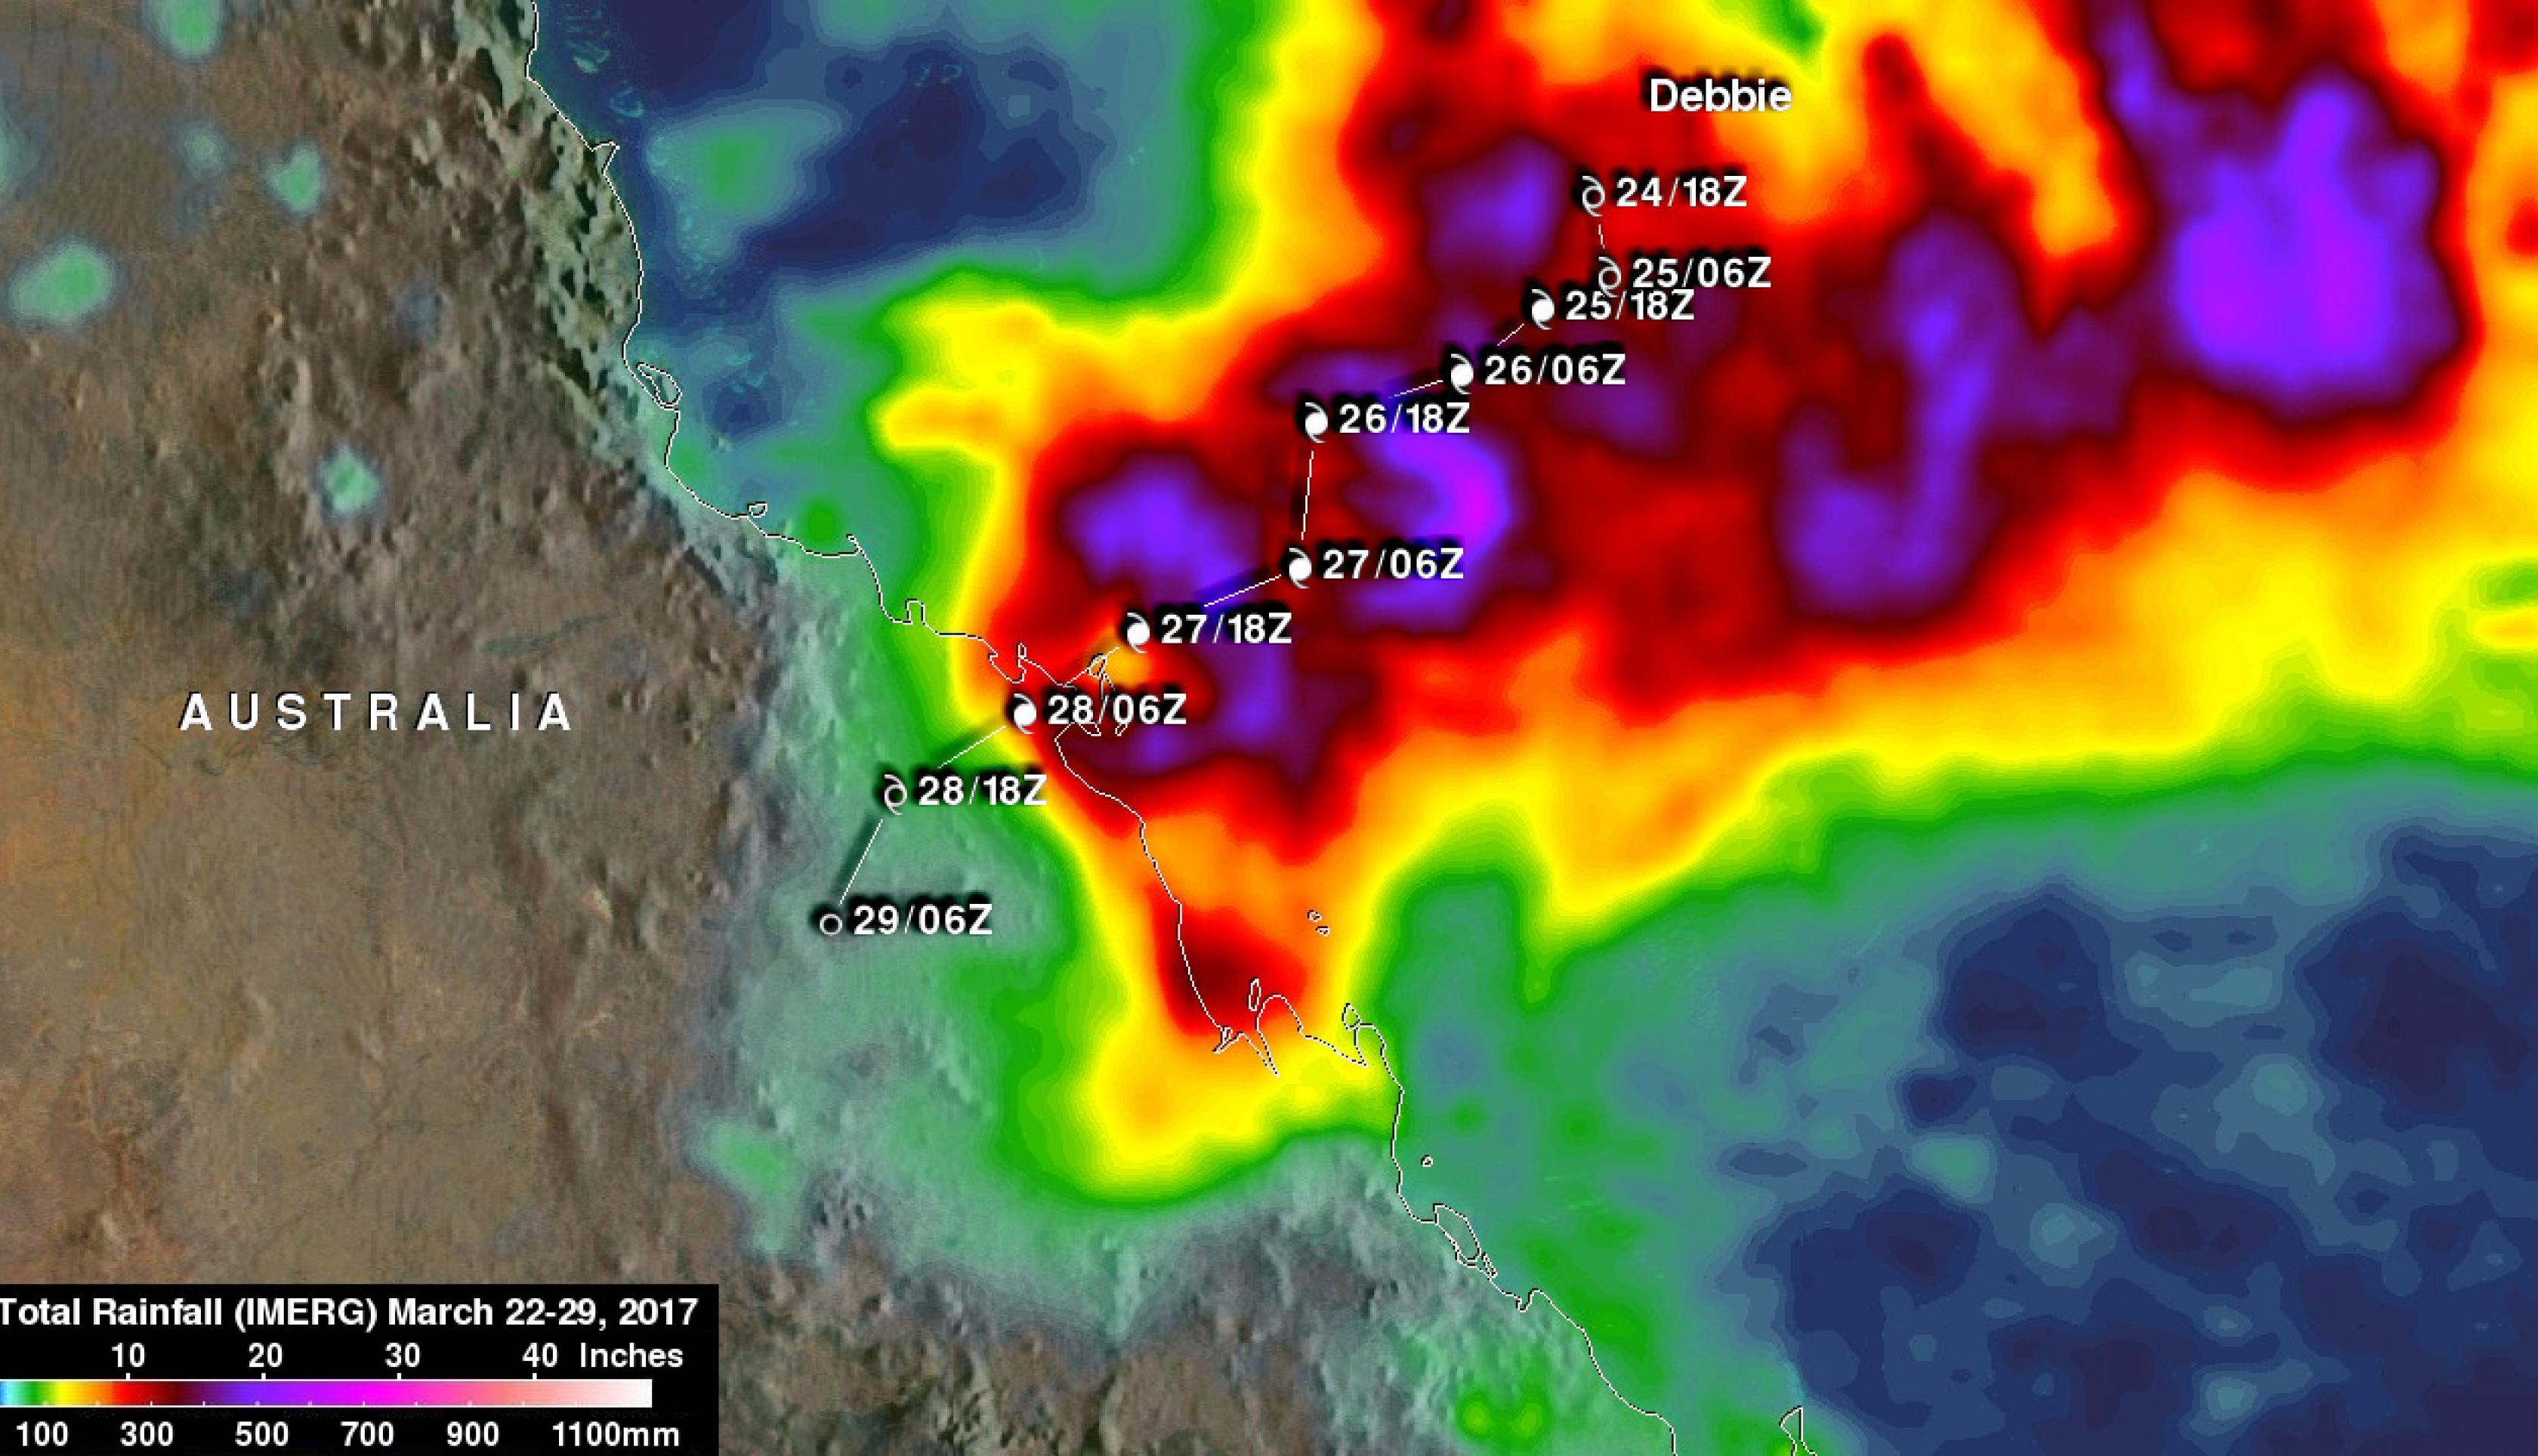 Animated 3D look at precipitation from tropical cyclone Debbie.